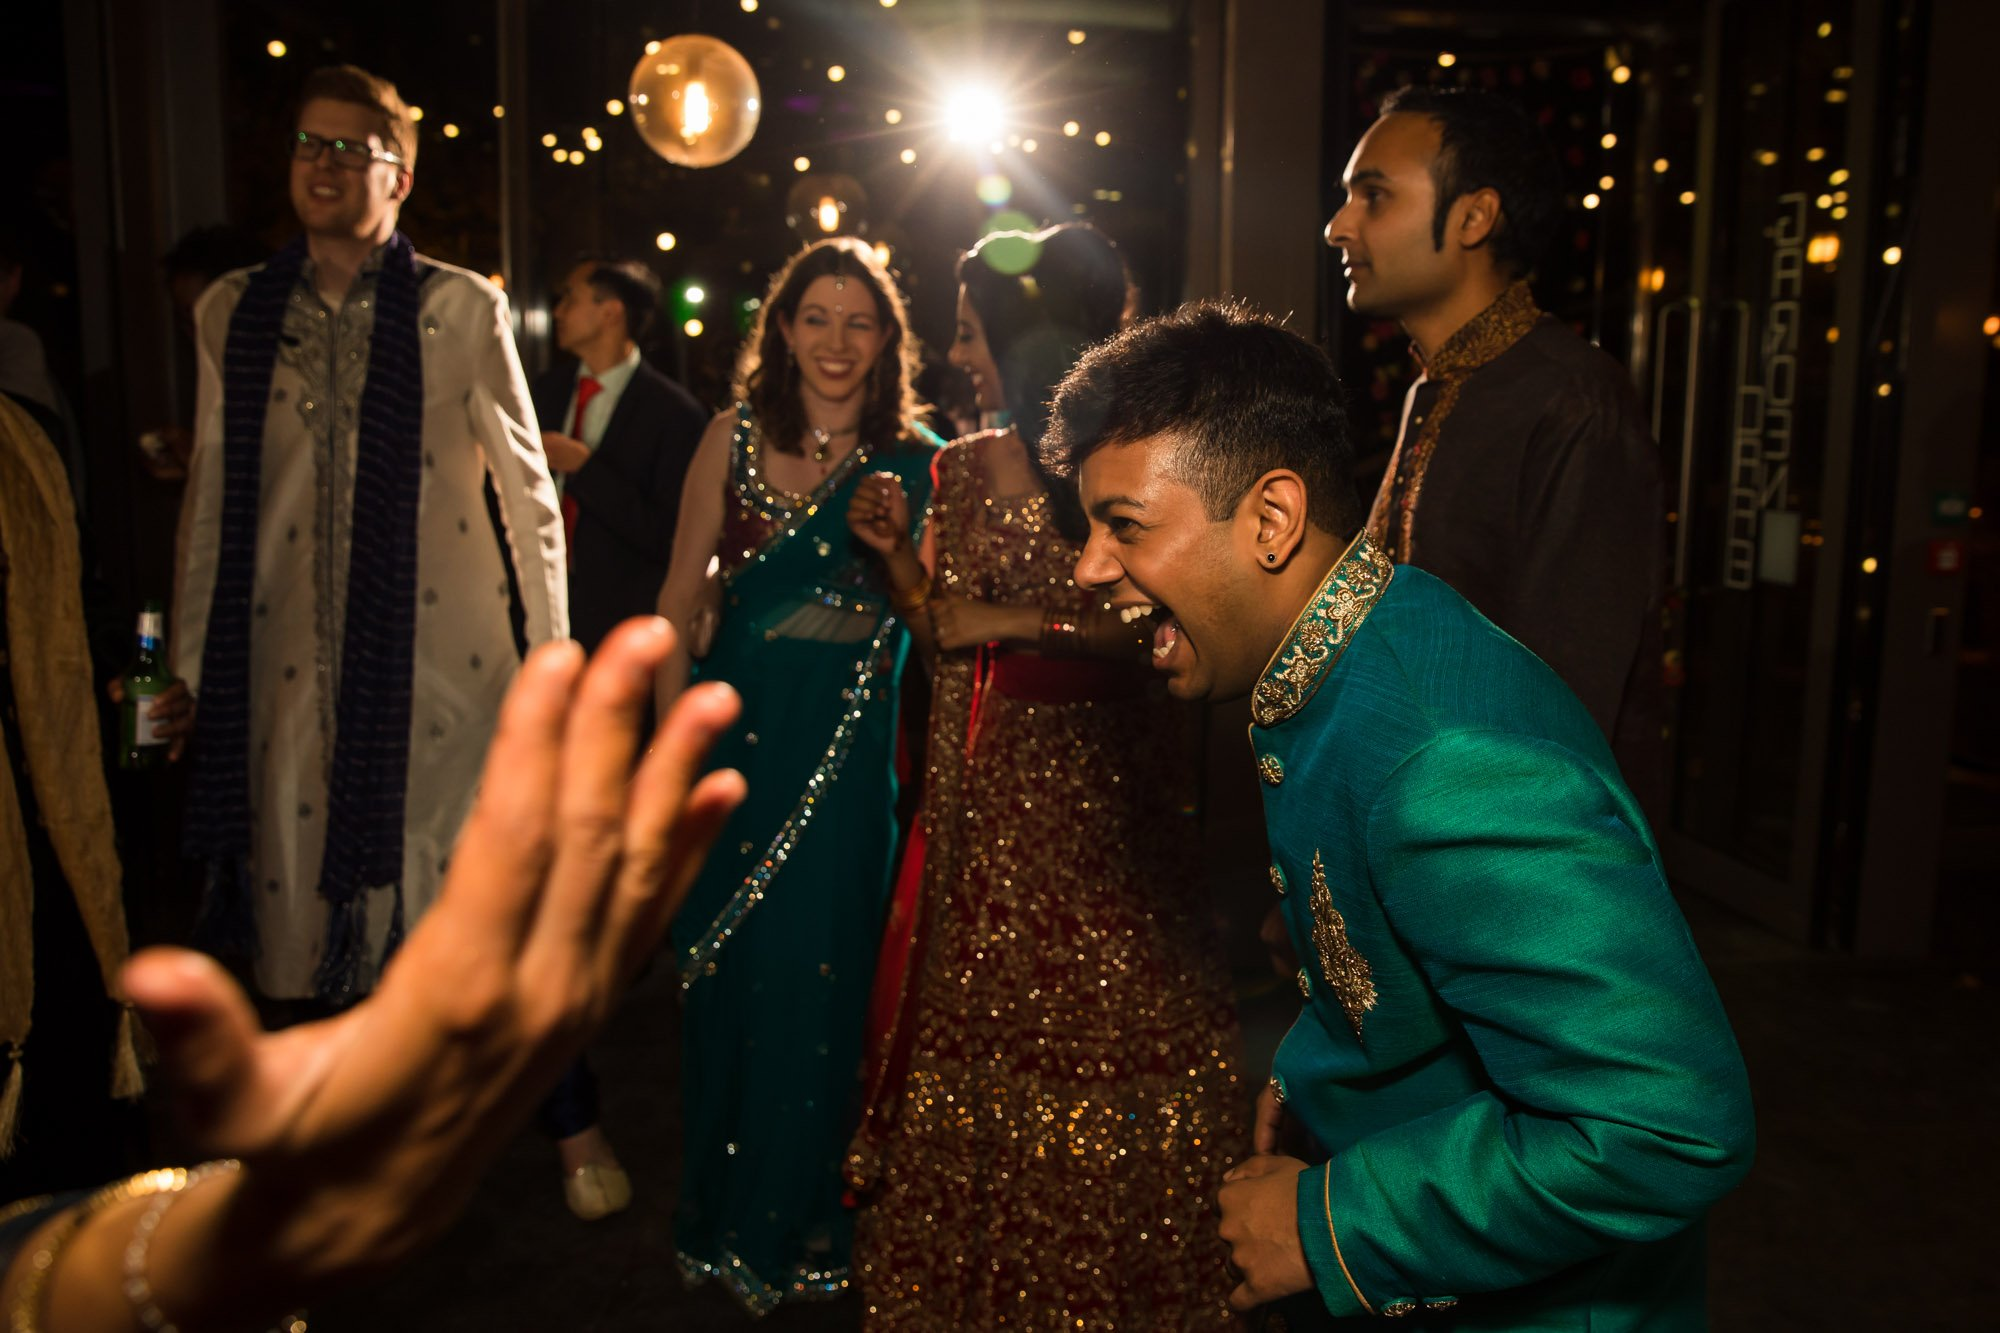 Indian wedding photographers, Bath, Somerset, Holburne Museum, Mendhi night